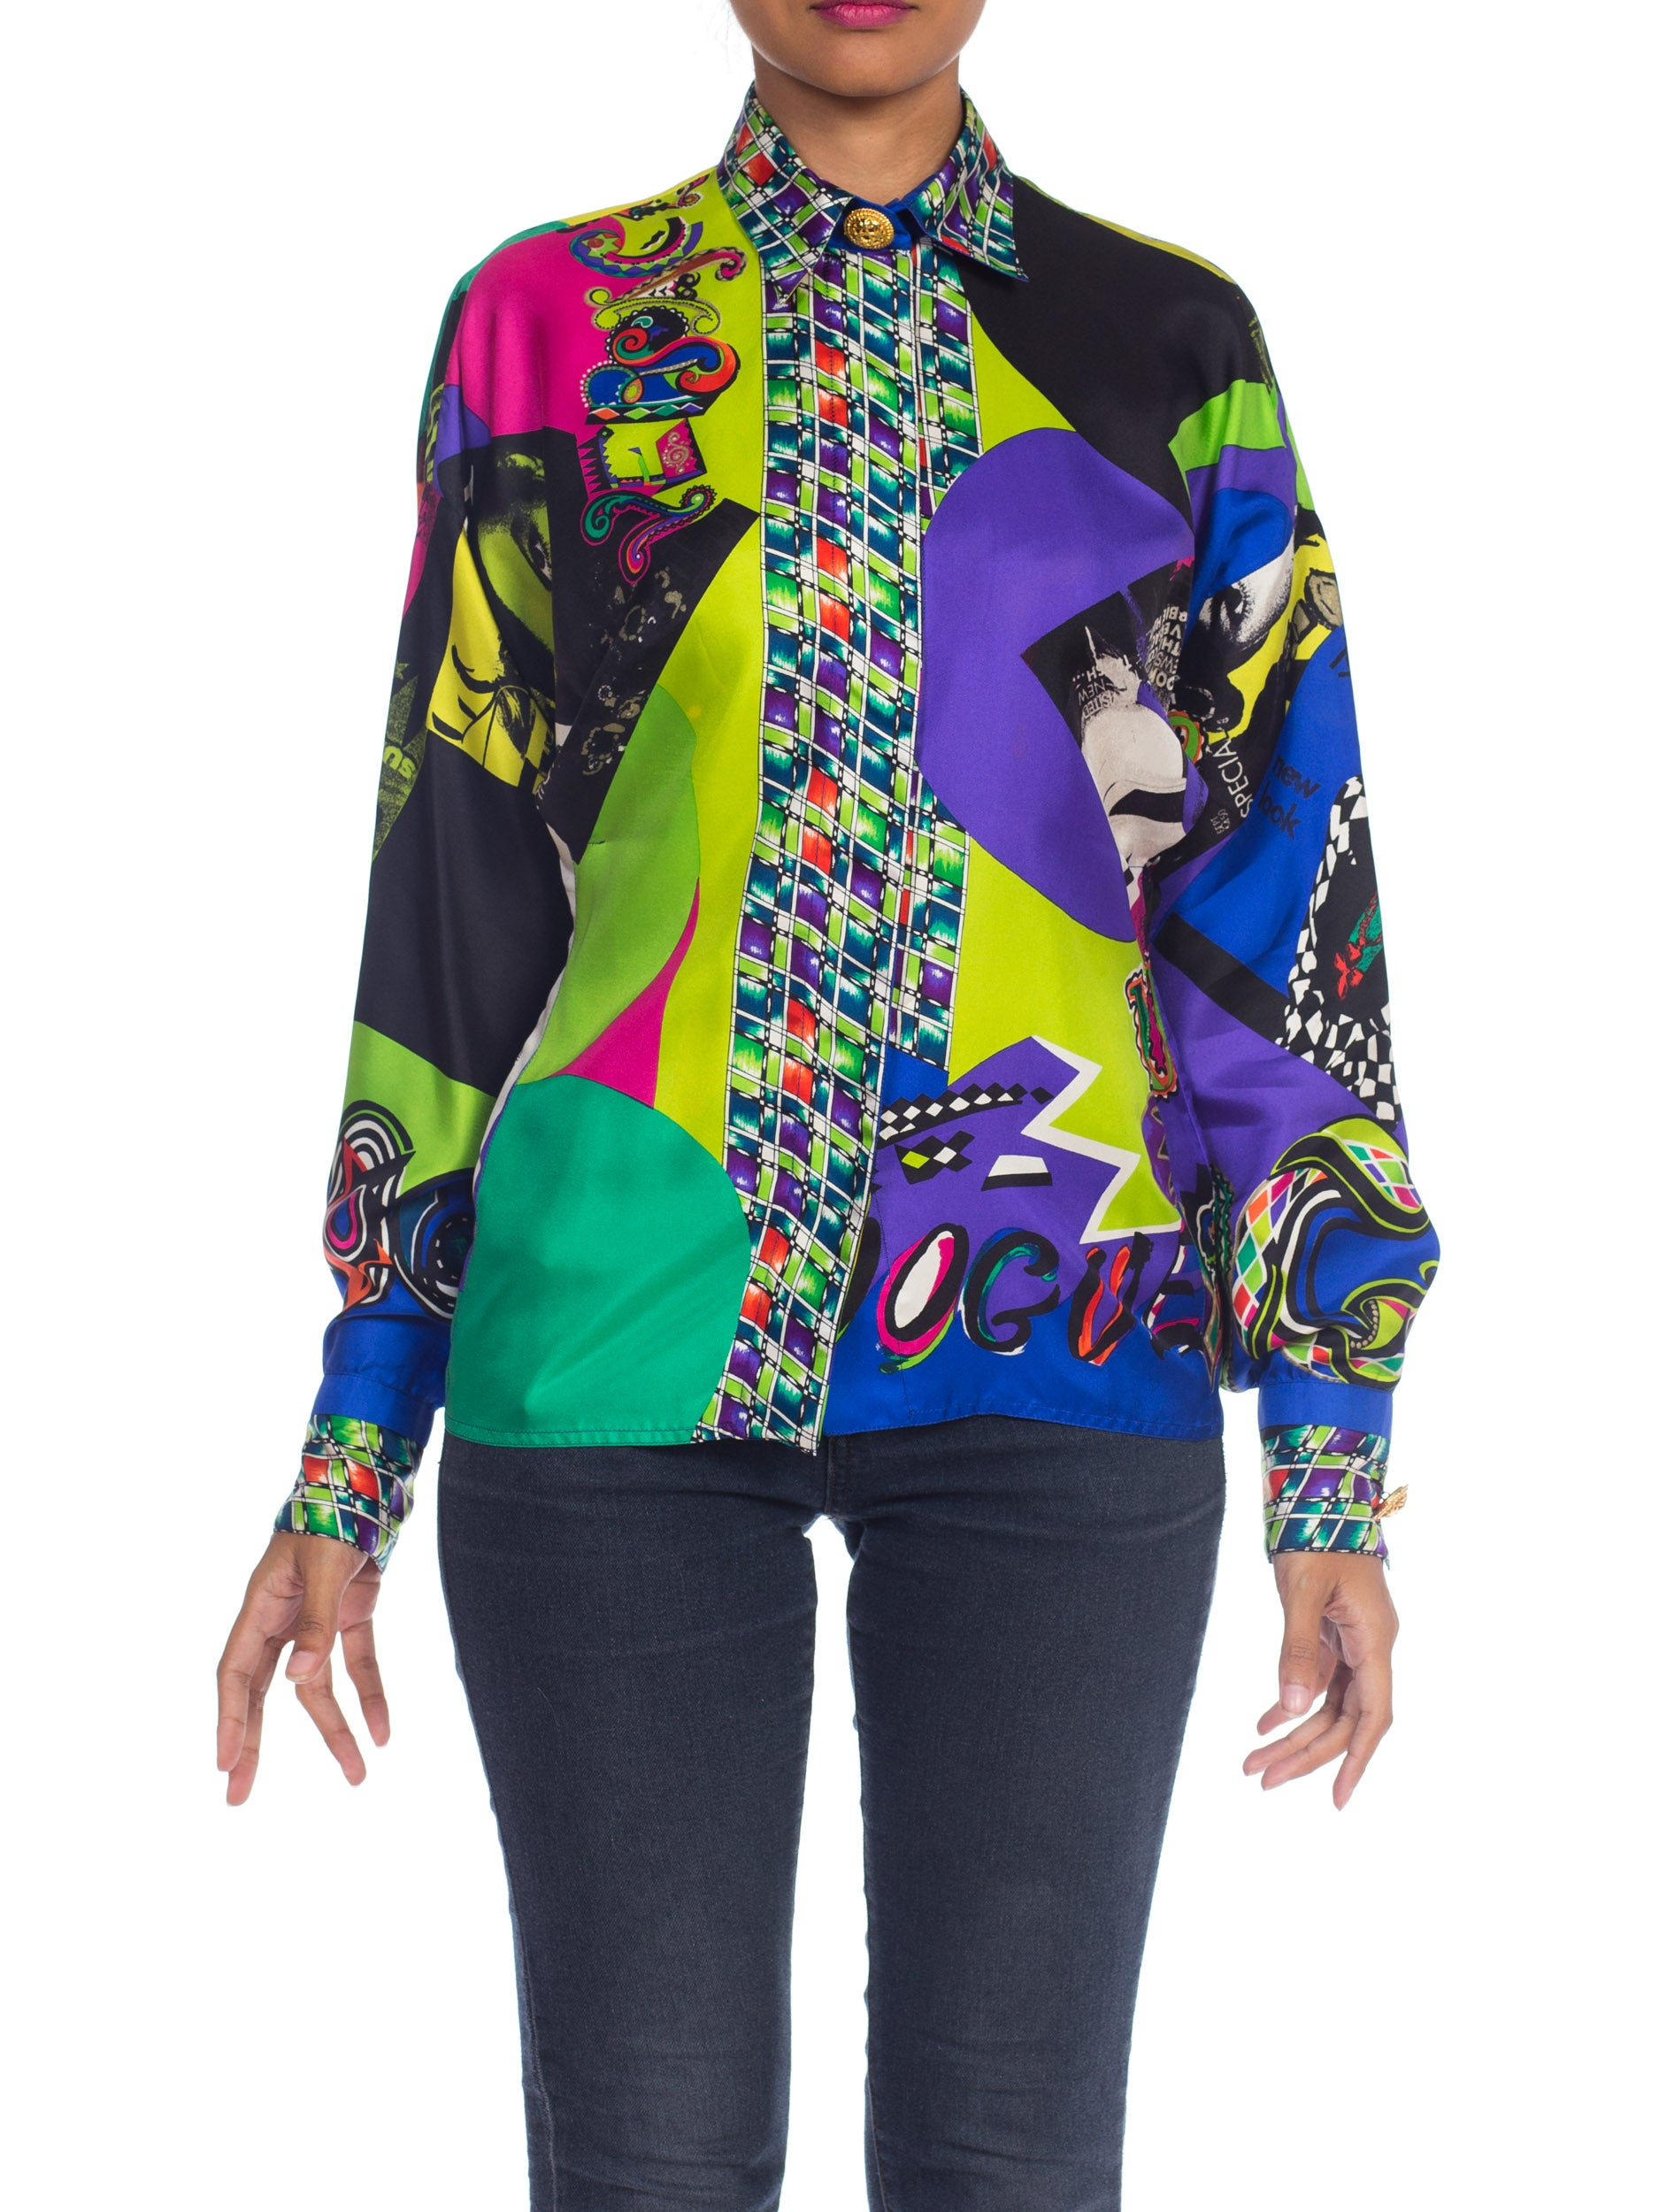 1990s Atelier Gianni Versace Silk Vogue Collection Blouse